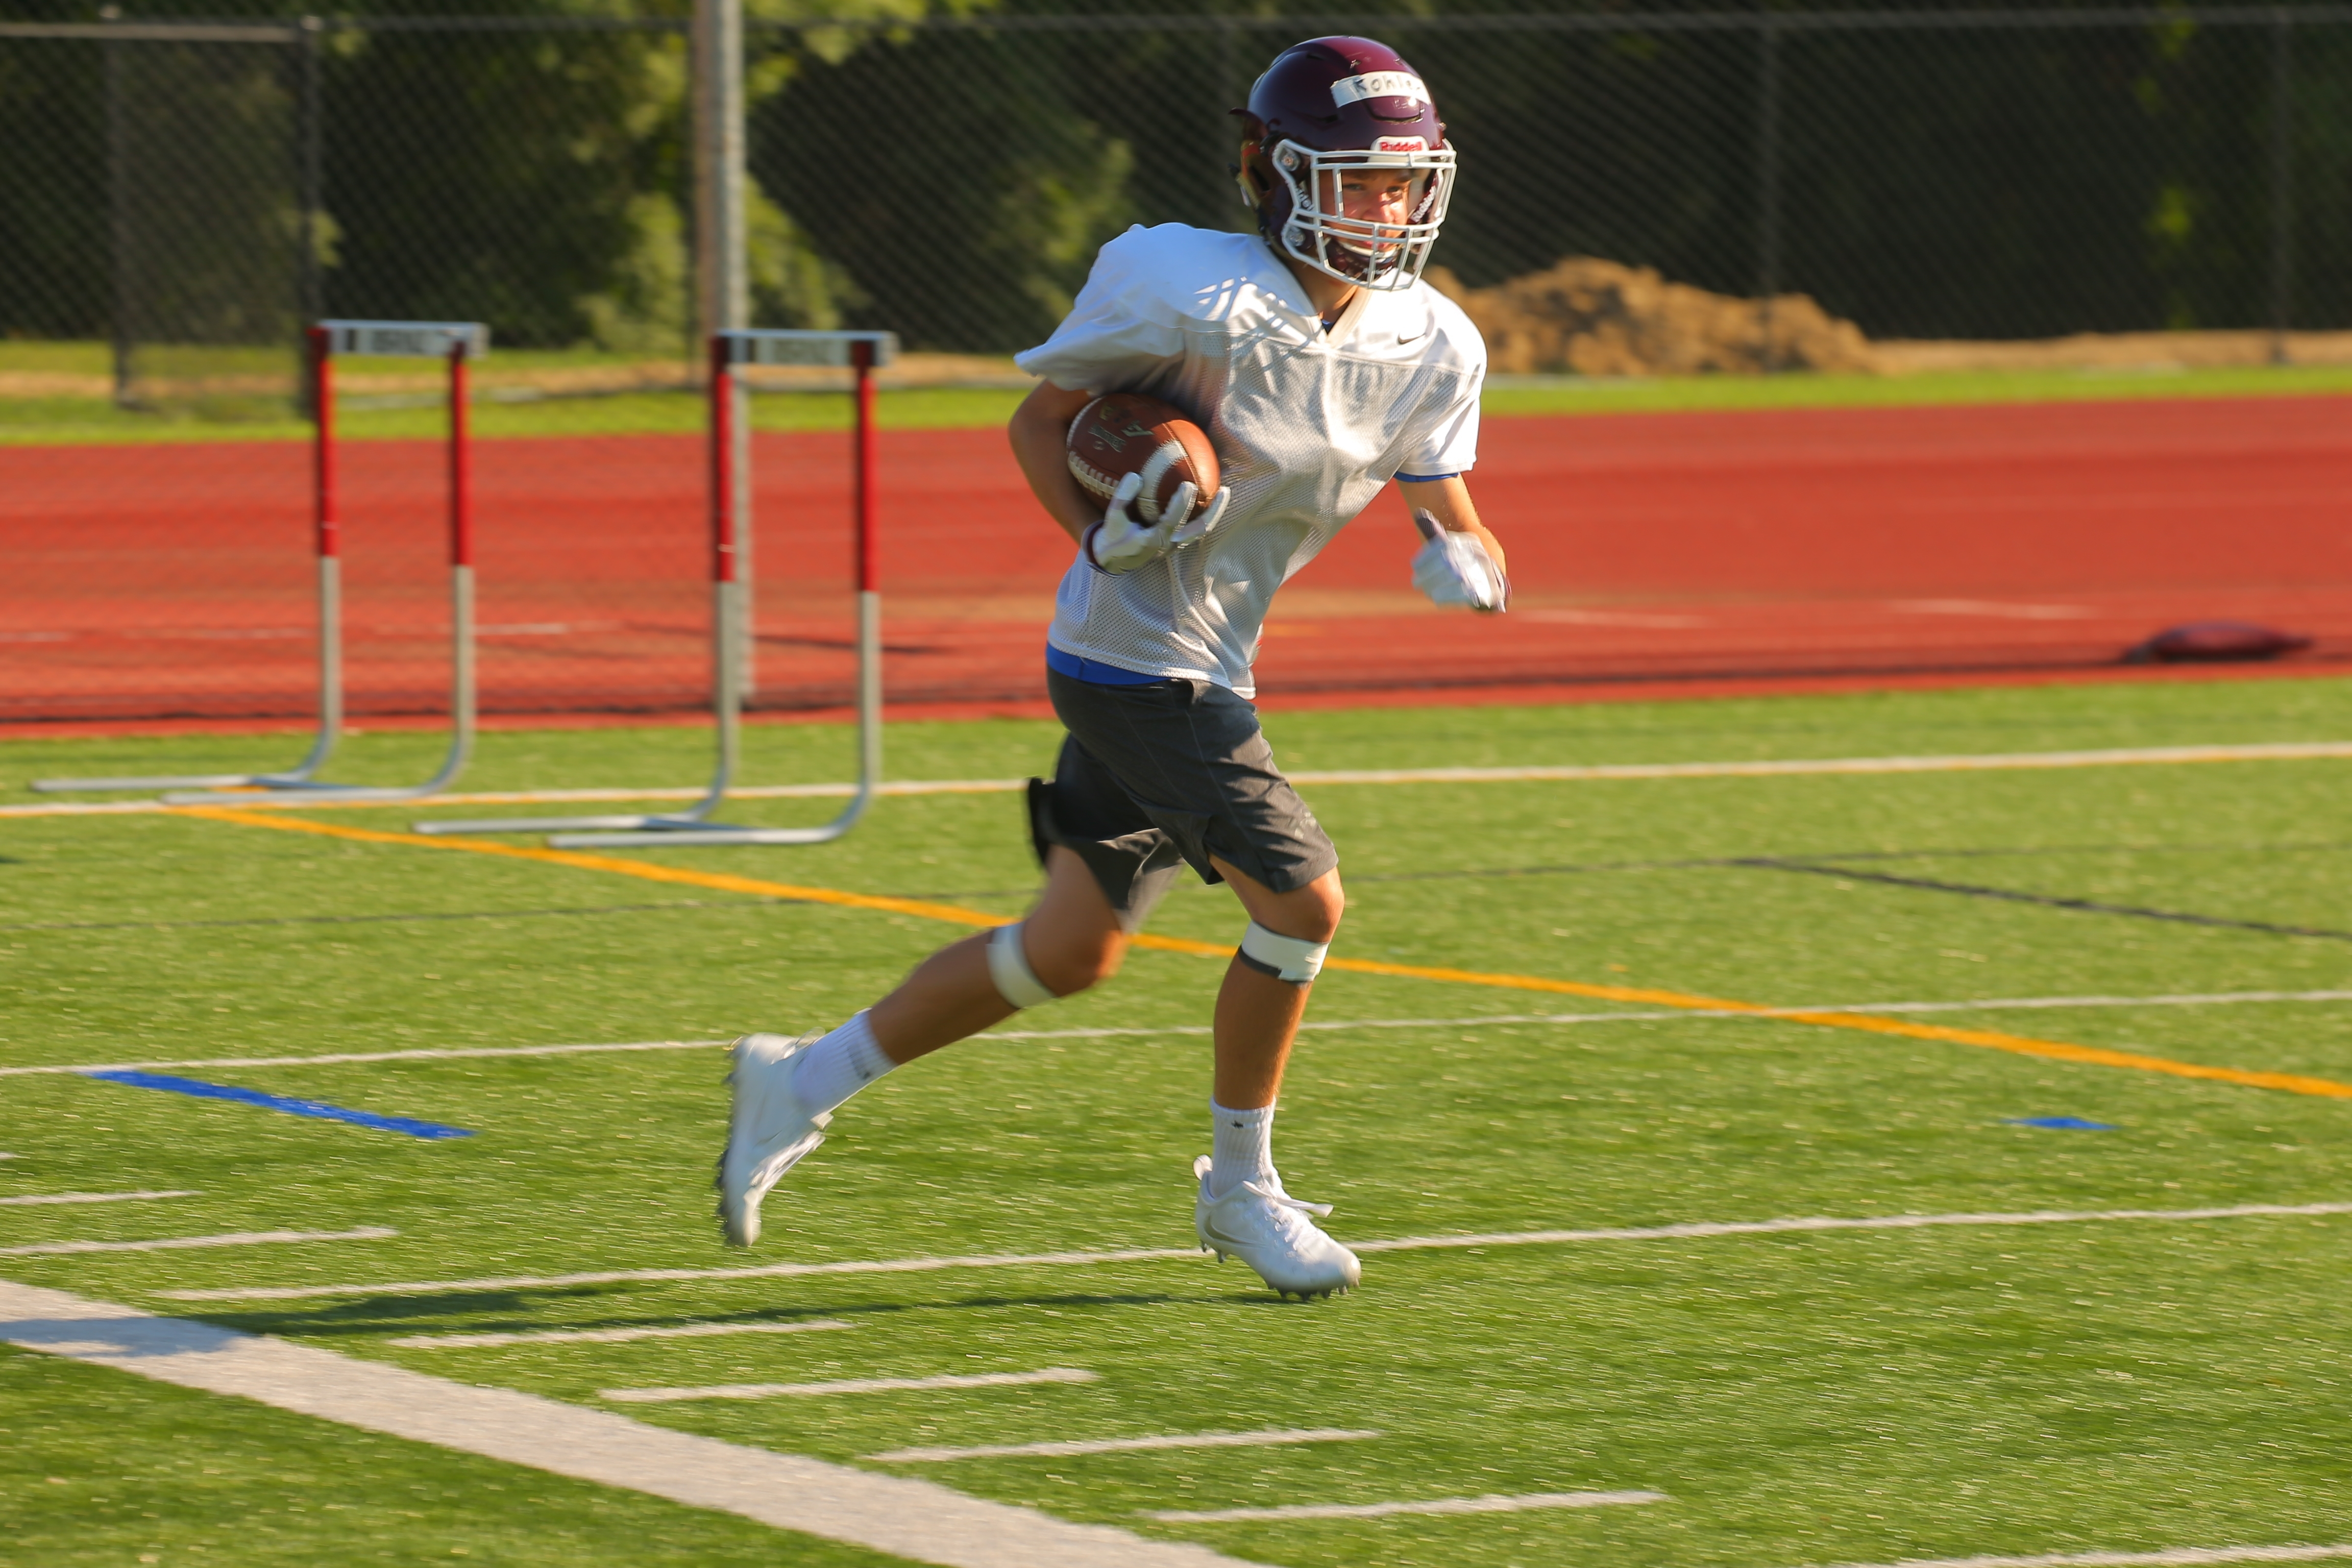 Jacob Kohler carries the ball at practice for the Orchard Park High School varsity football team in Orchard Park, N.Y., on Friday Aug. 19, 2016.  (John Hickey/Buffalo News)